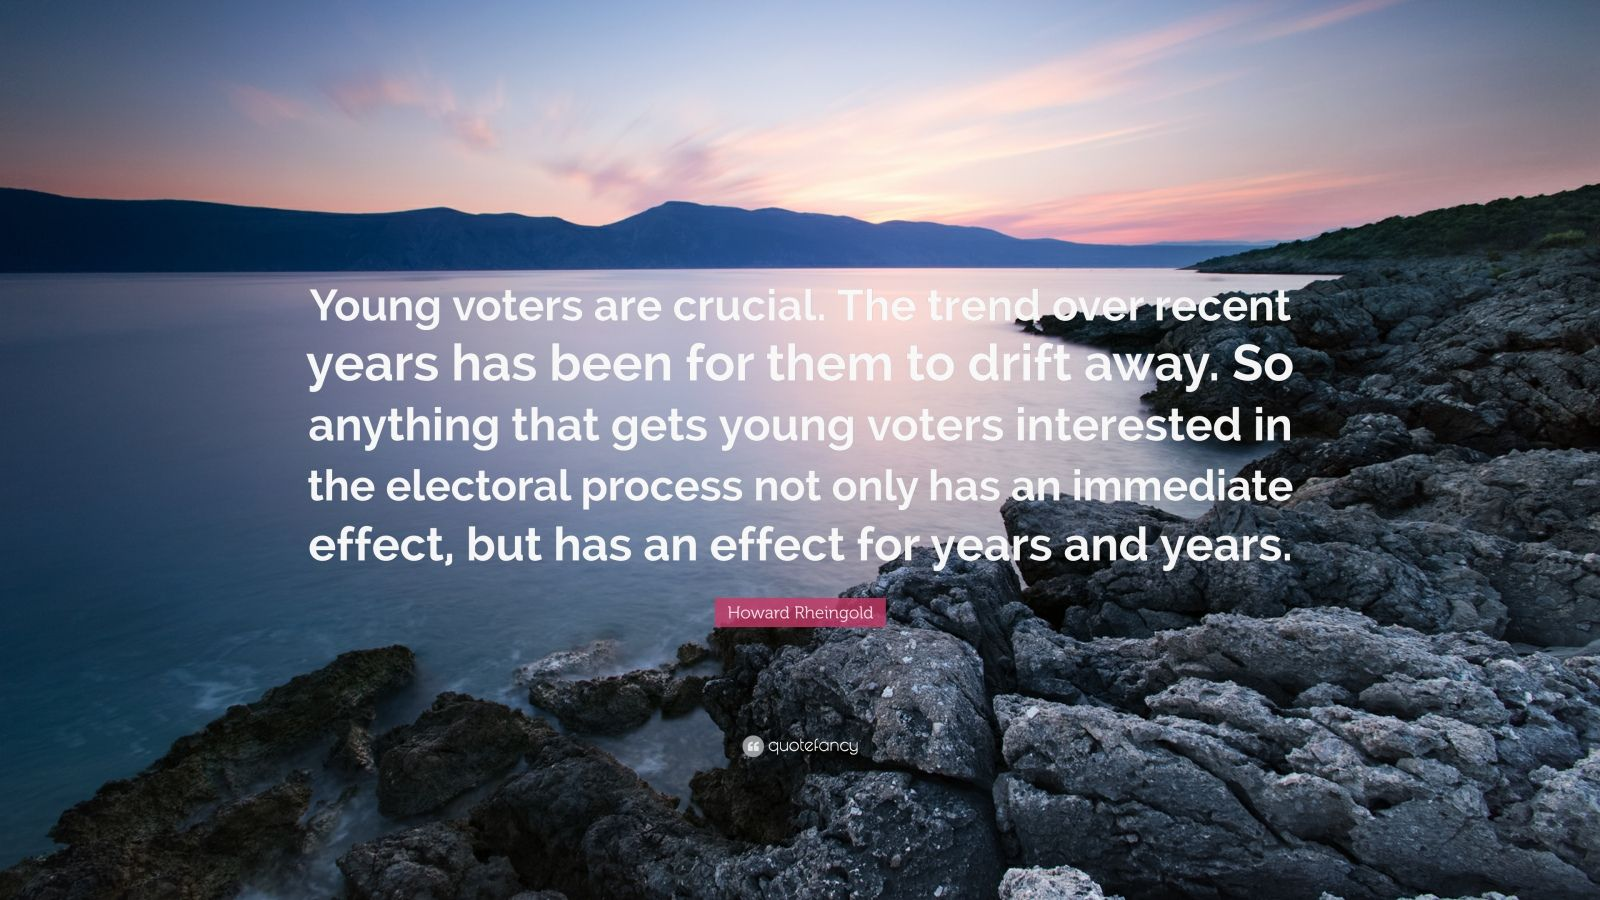 """Howard Rheingold Quote: """"Young voters are crucial. The trend over recent years has been for them to drift away. So anything that gets young voters interested in the electoral process not only has an immediate effect, but has an effect for years and years."""""""